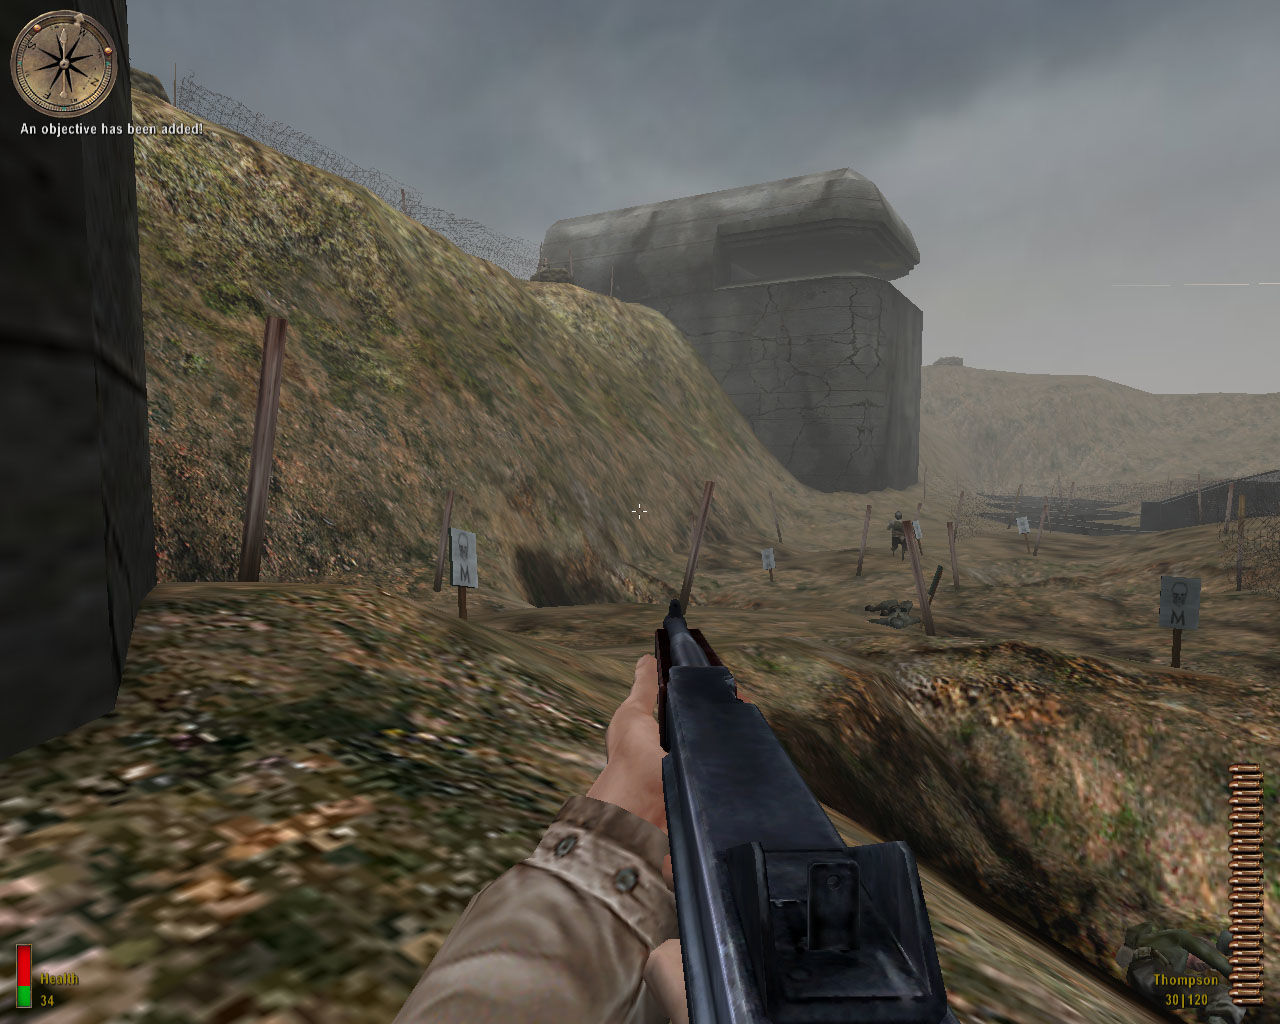 Medal of Honor: Allied Assault Windows Looks like I have to break the Atlantic Wall myself.